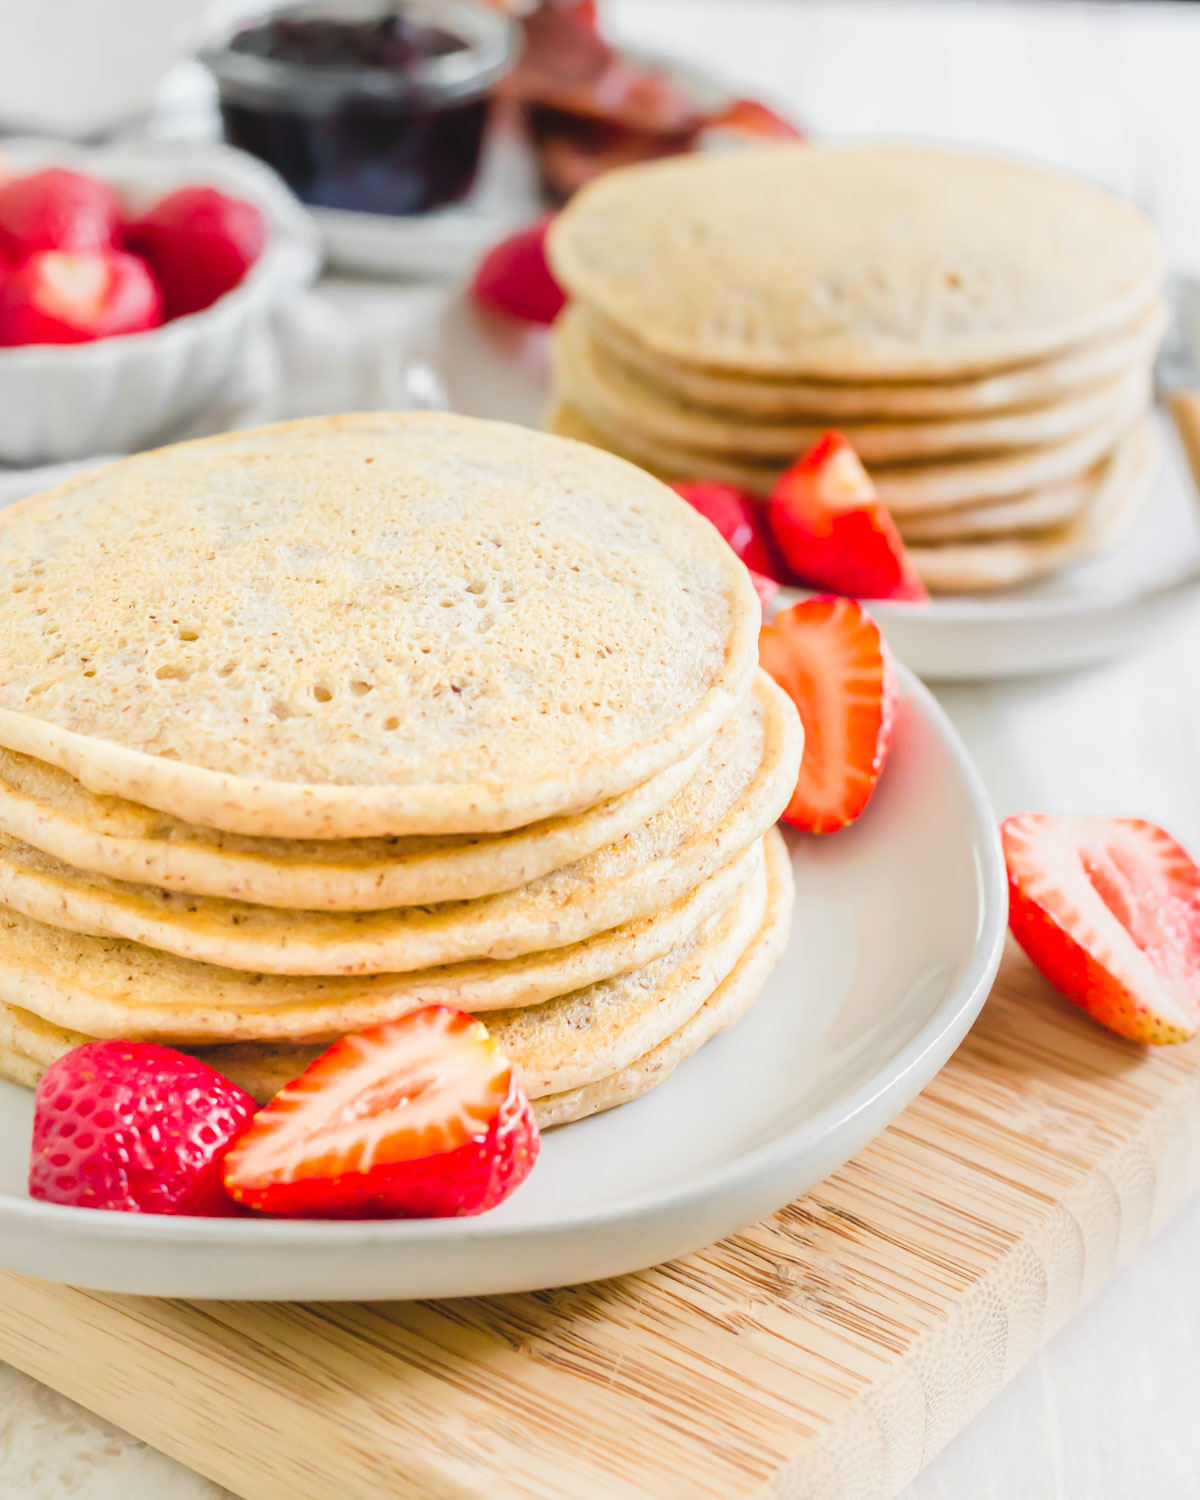 Cassava flour pancake stack with strawberries on a plate.